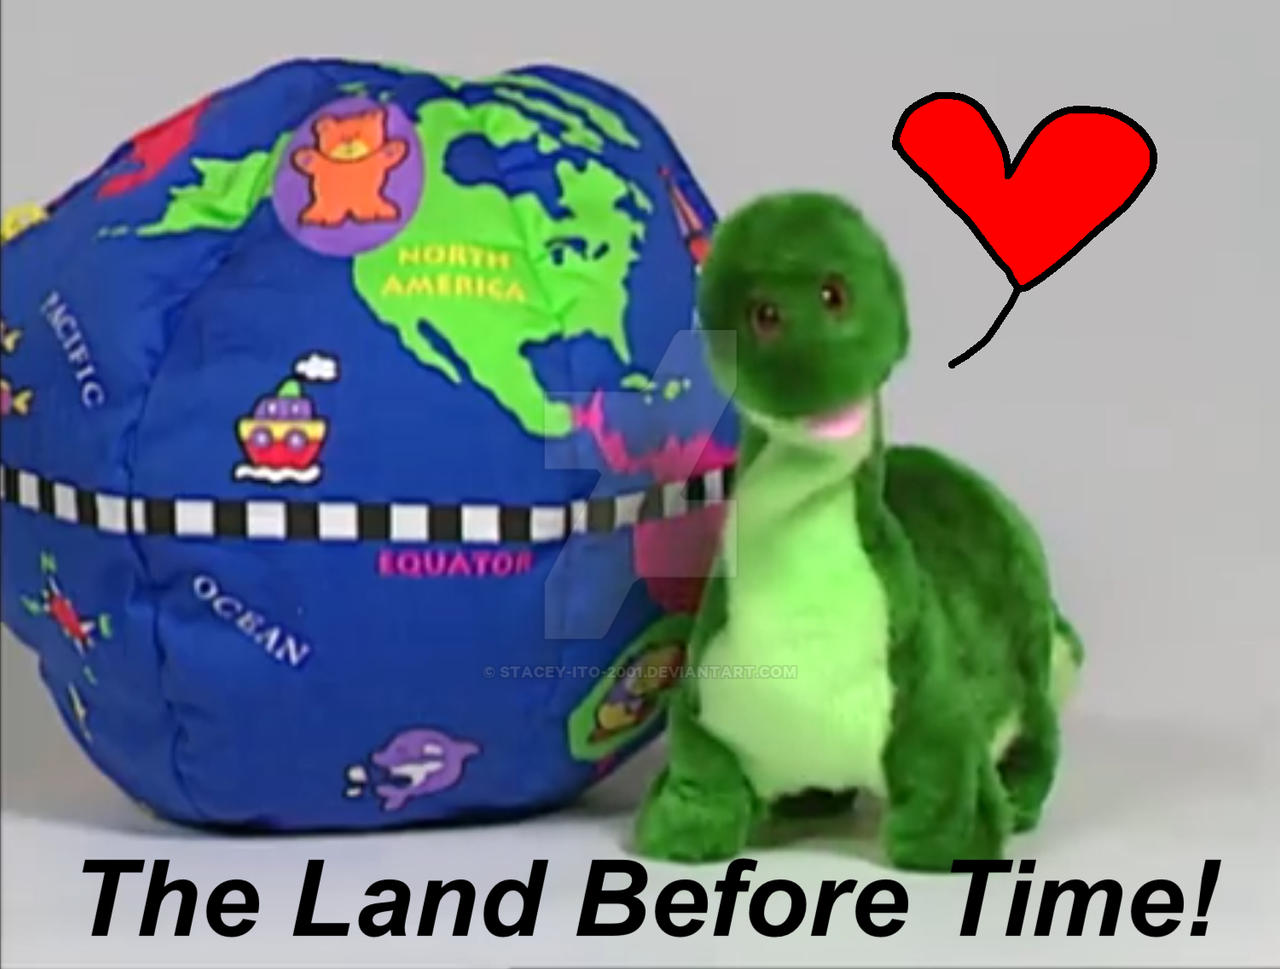 Land Before Time Littlefoot Parody Wallpaper By Stacey Ito 2001 On